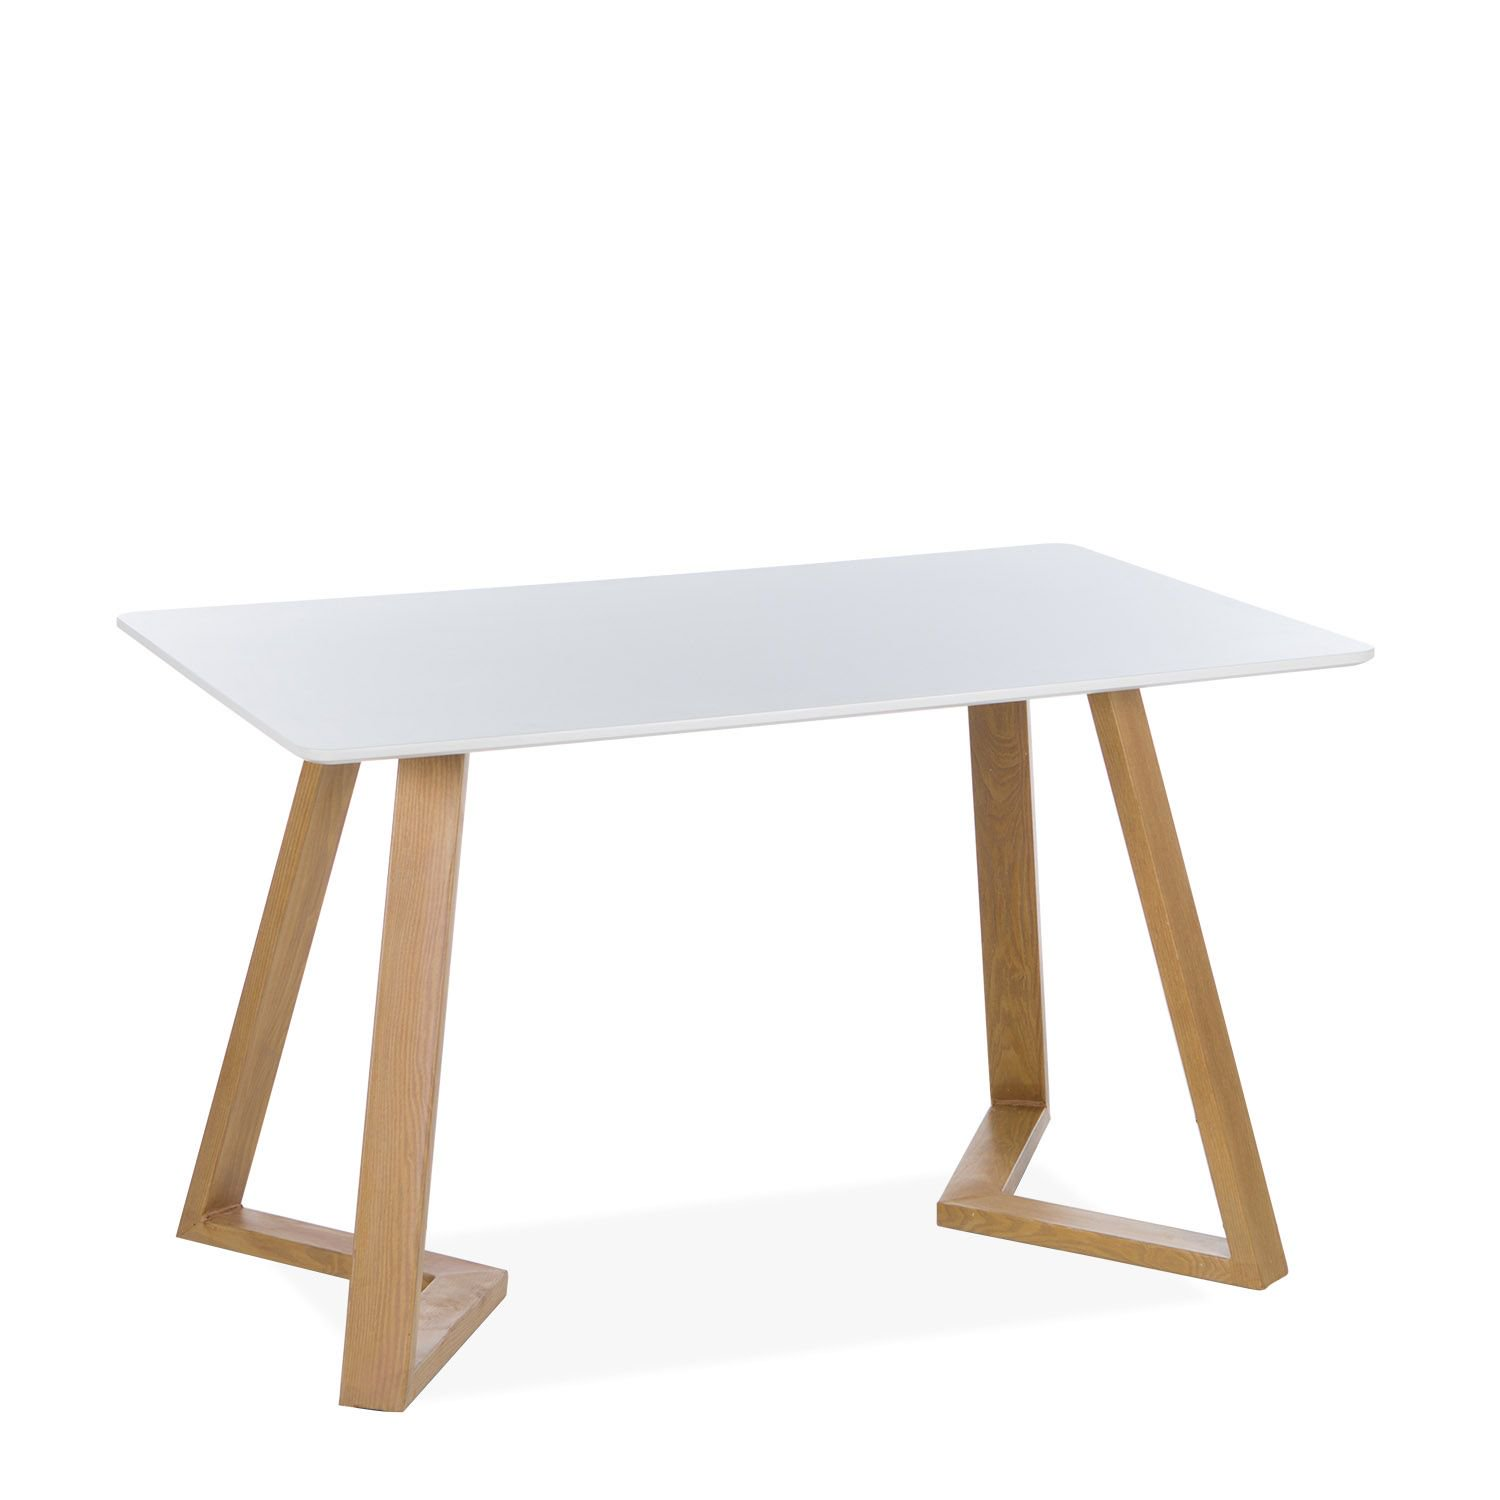 White dining tables wooden MDF top